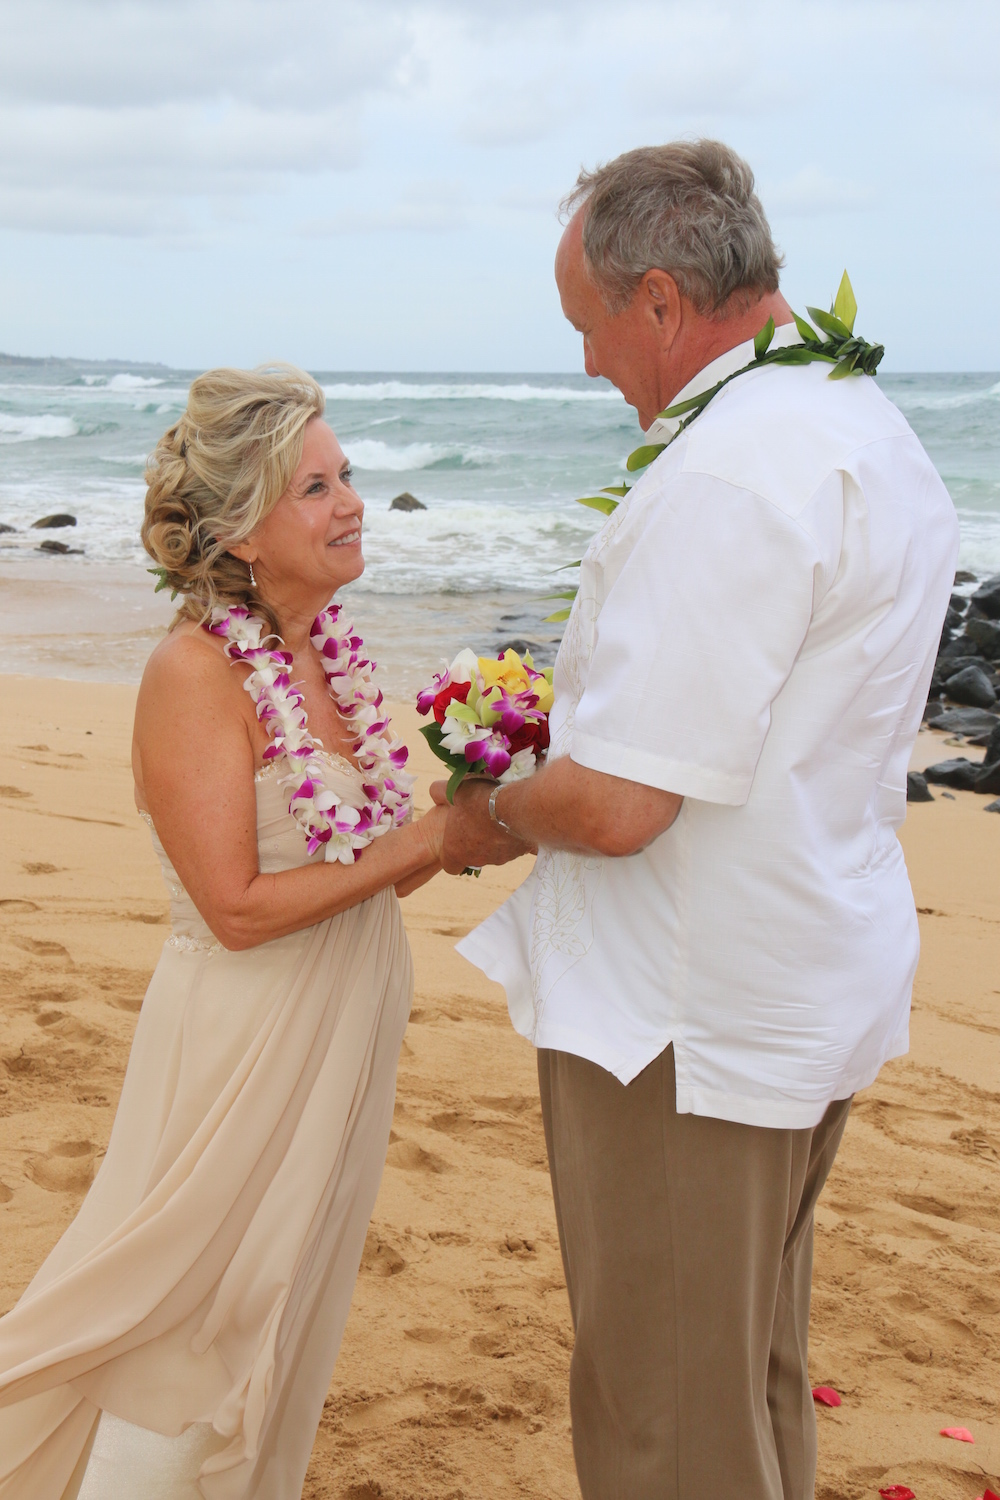 Kauai Beach Weddings: The Best Ways to Wear Your Hair